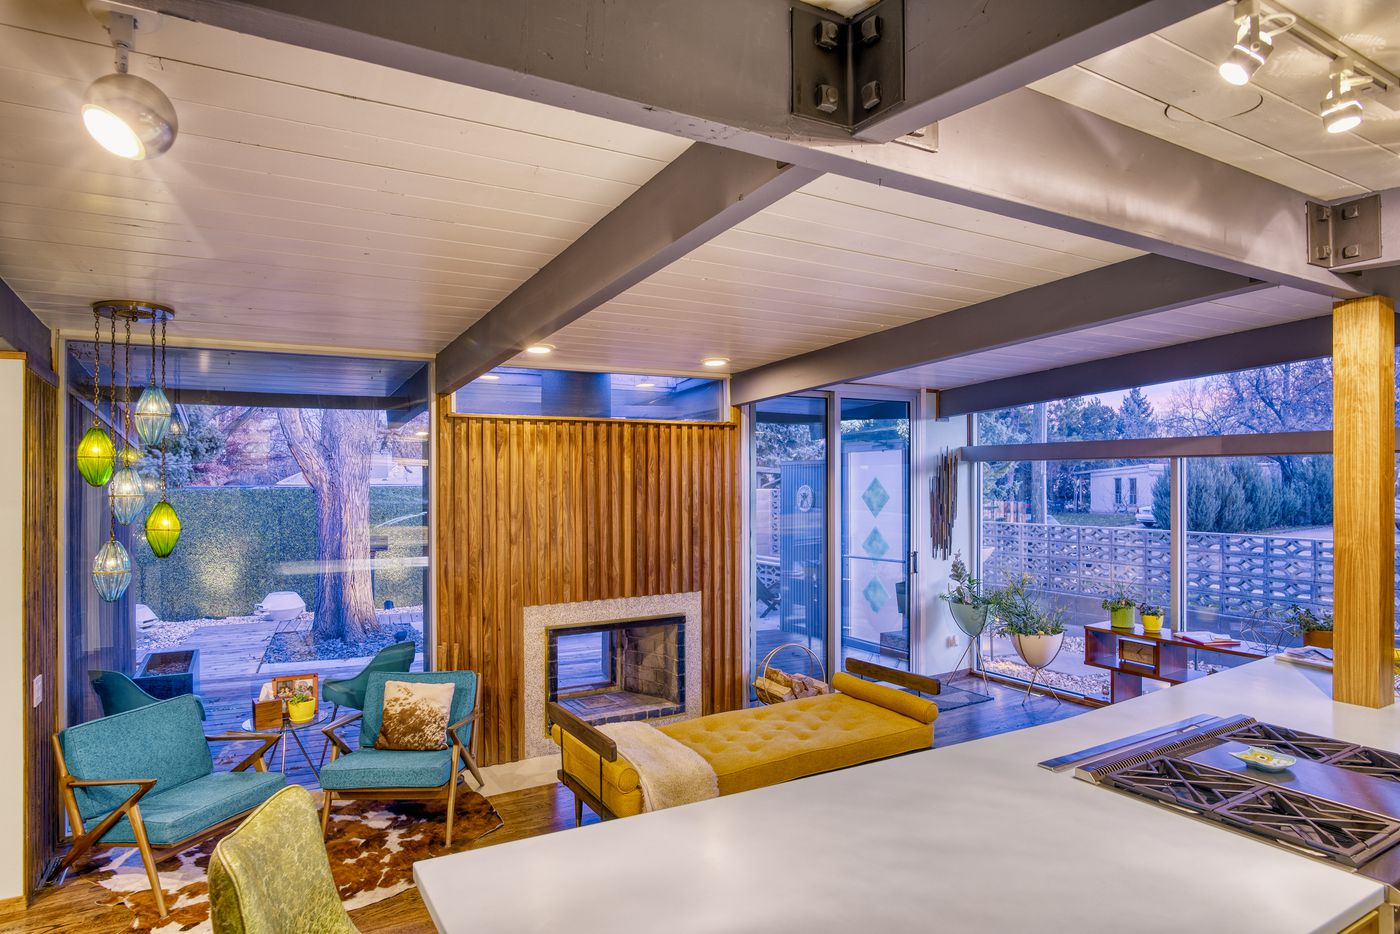 Renovating a midcentury modern home: 9 tips from an expert - Curbed